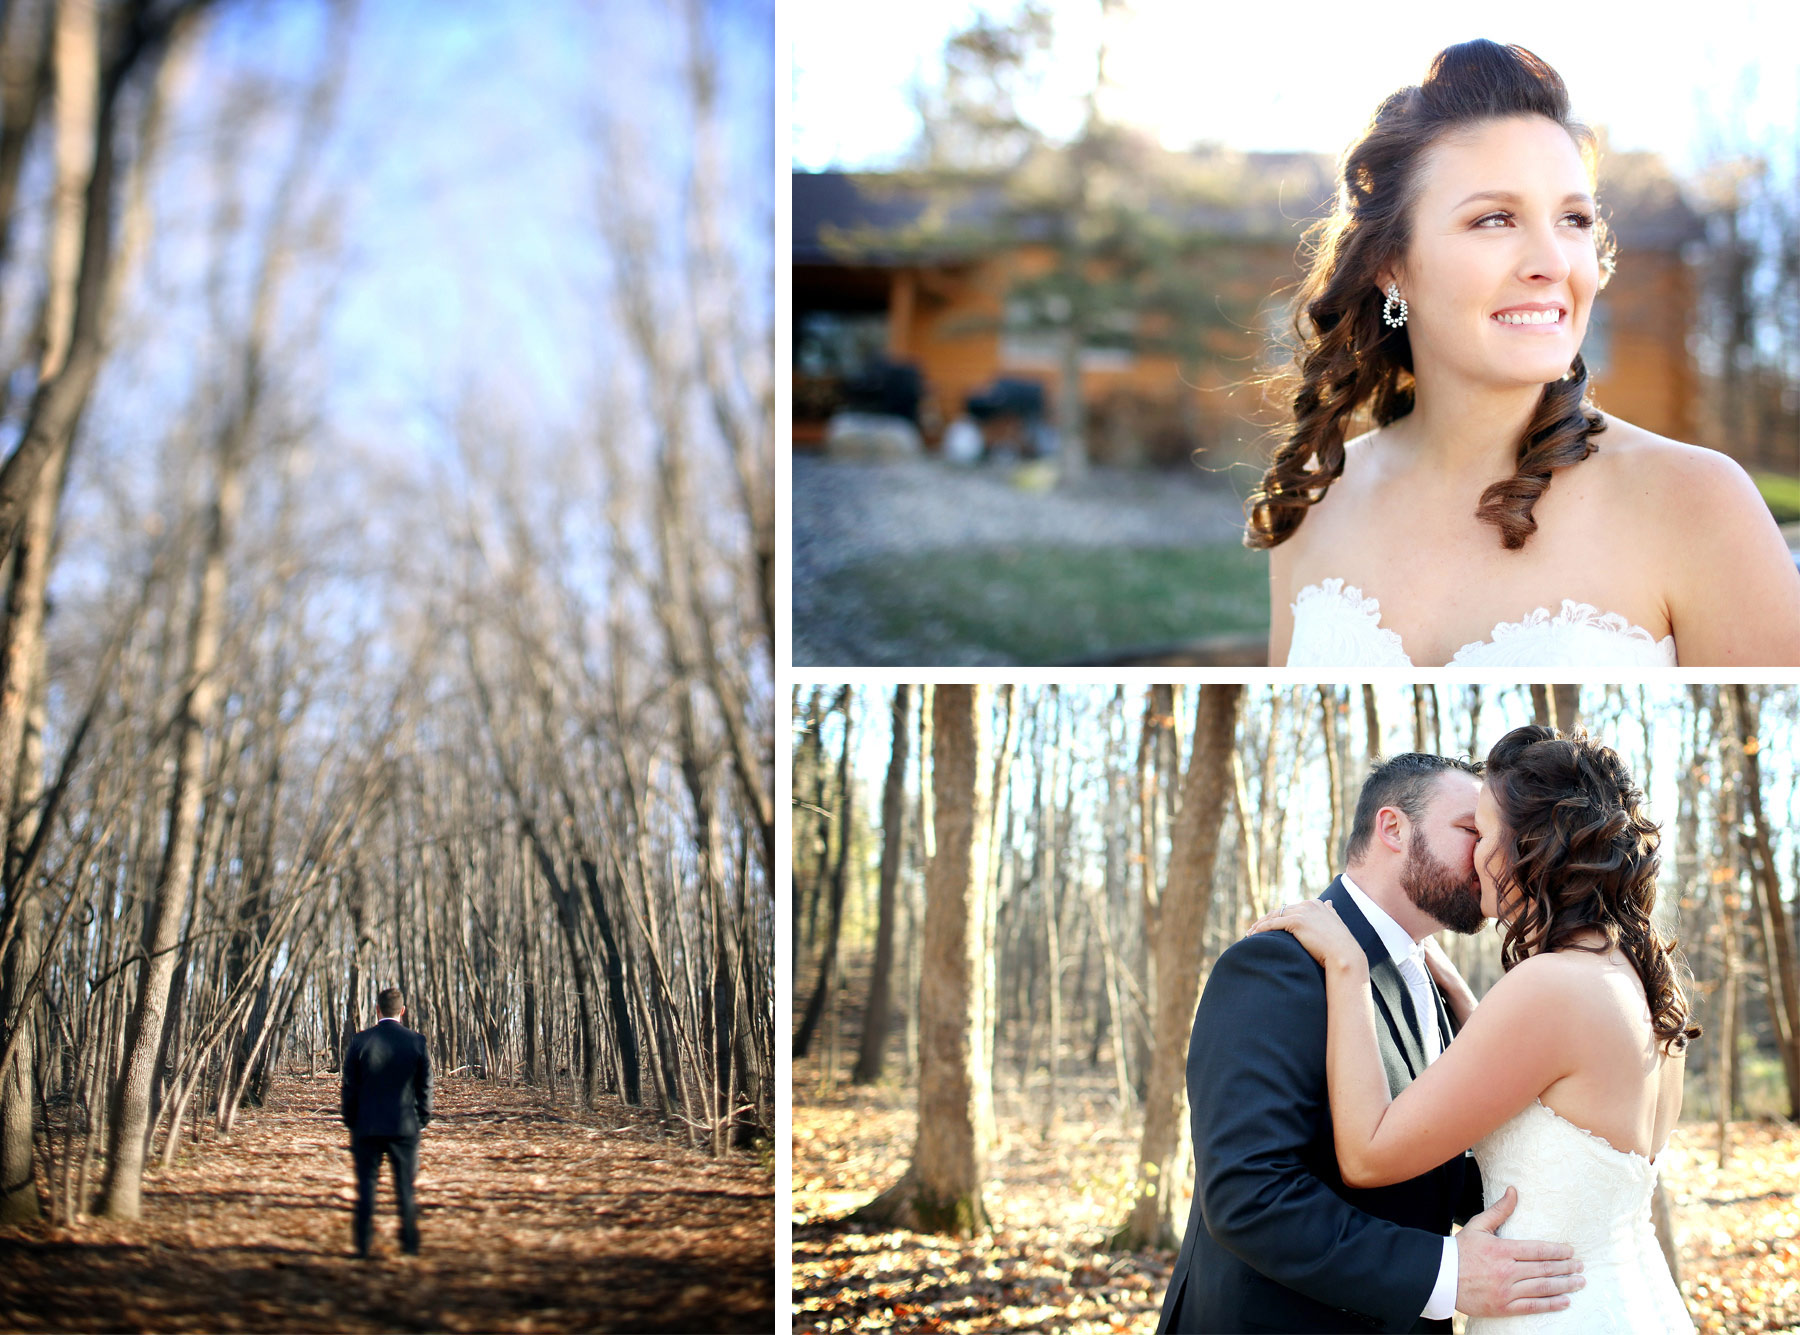 04-Minneapolis-Minnesota-Wedding-Photography-by-Vick-Photography-Prior-Lake-Horse-and-Hunt-Club-Rustic-Cabin-Woods-Sarah-and-Steve.jpg